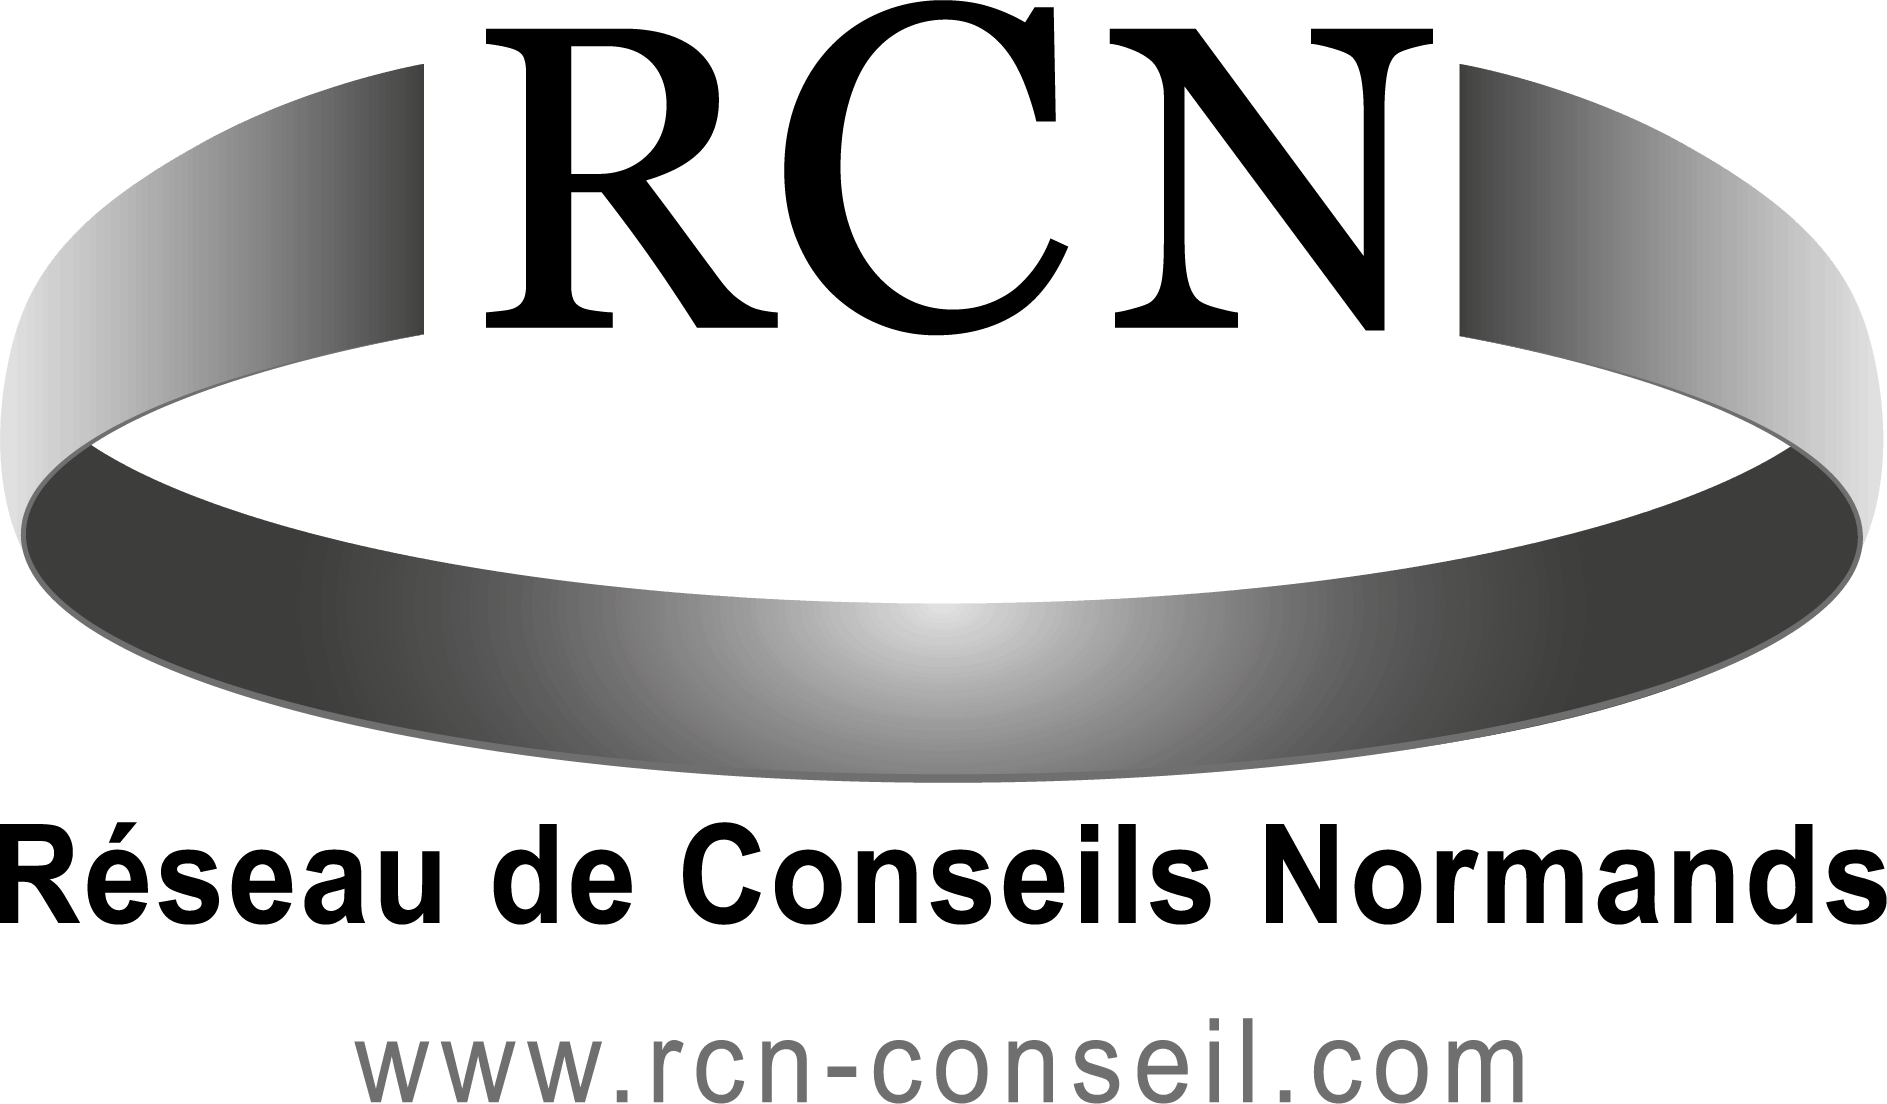 RETC Coaching - RCN